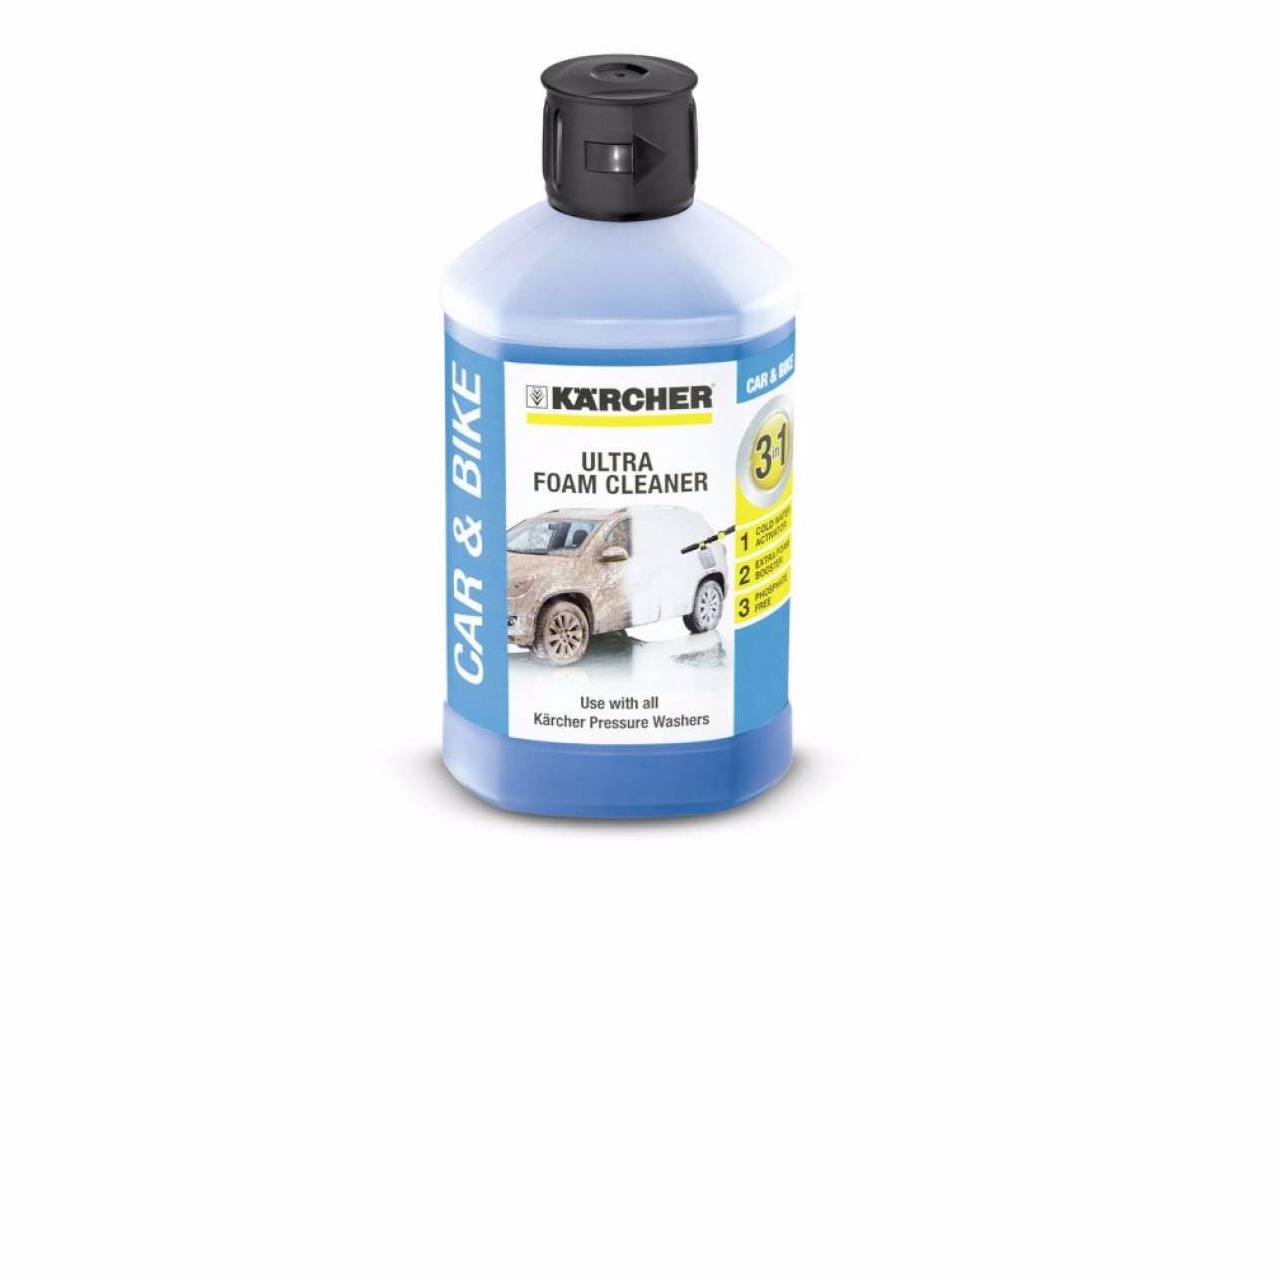 ULTRA FOAM CLEANER 3-IN-1, 1 L